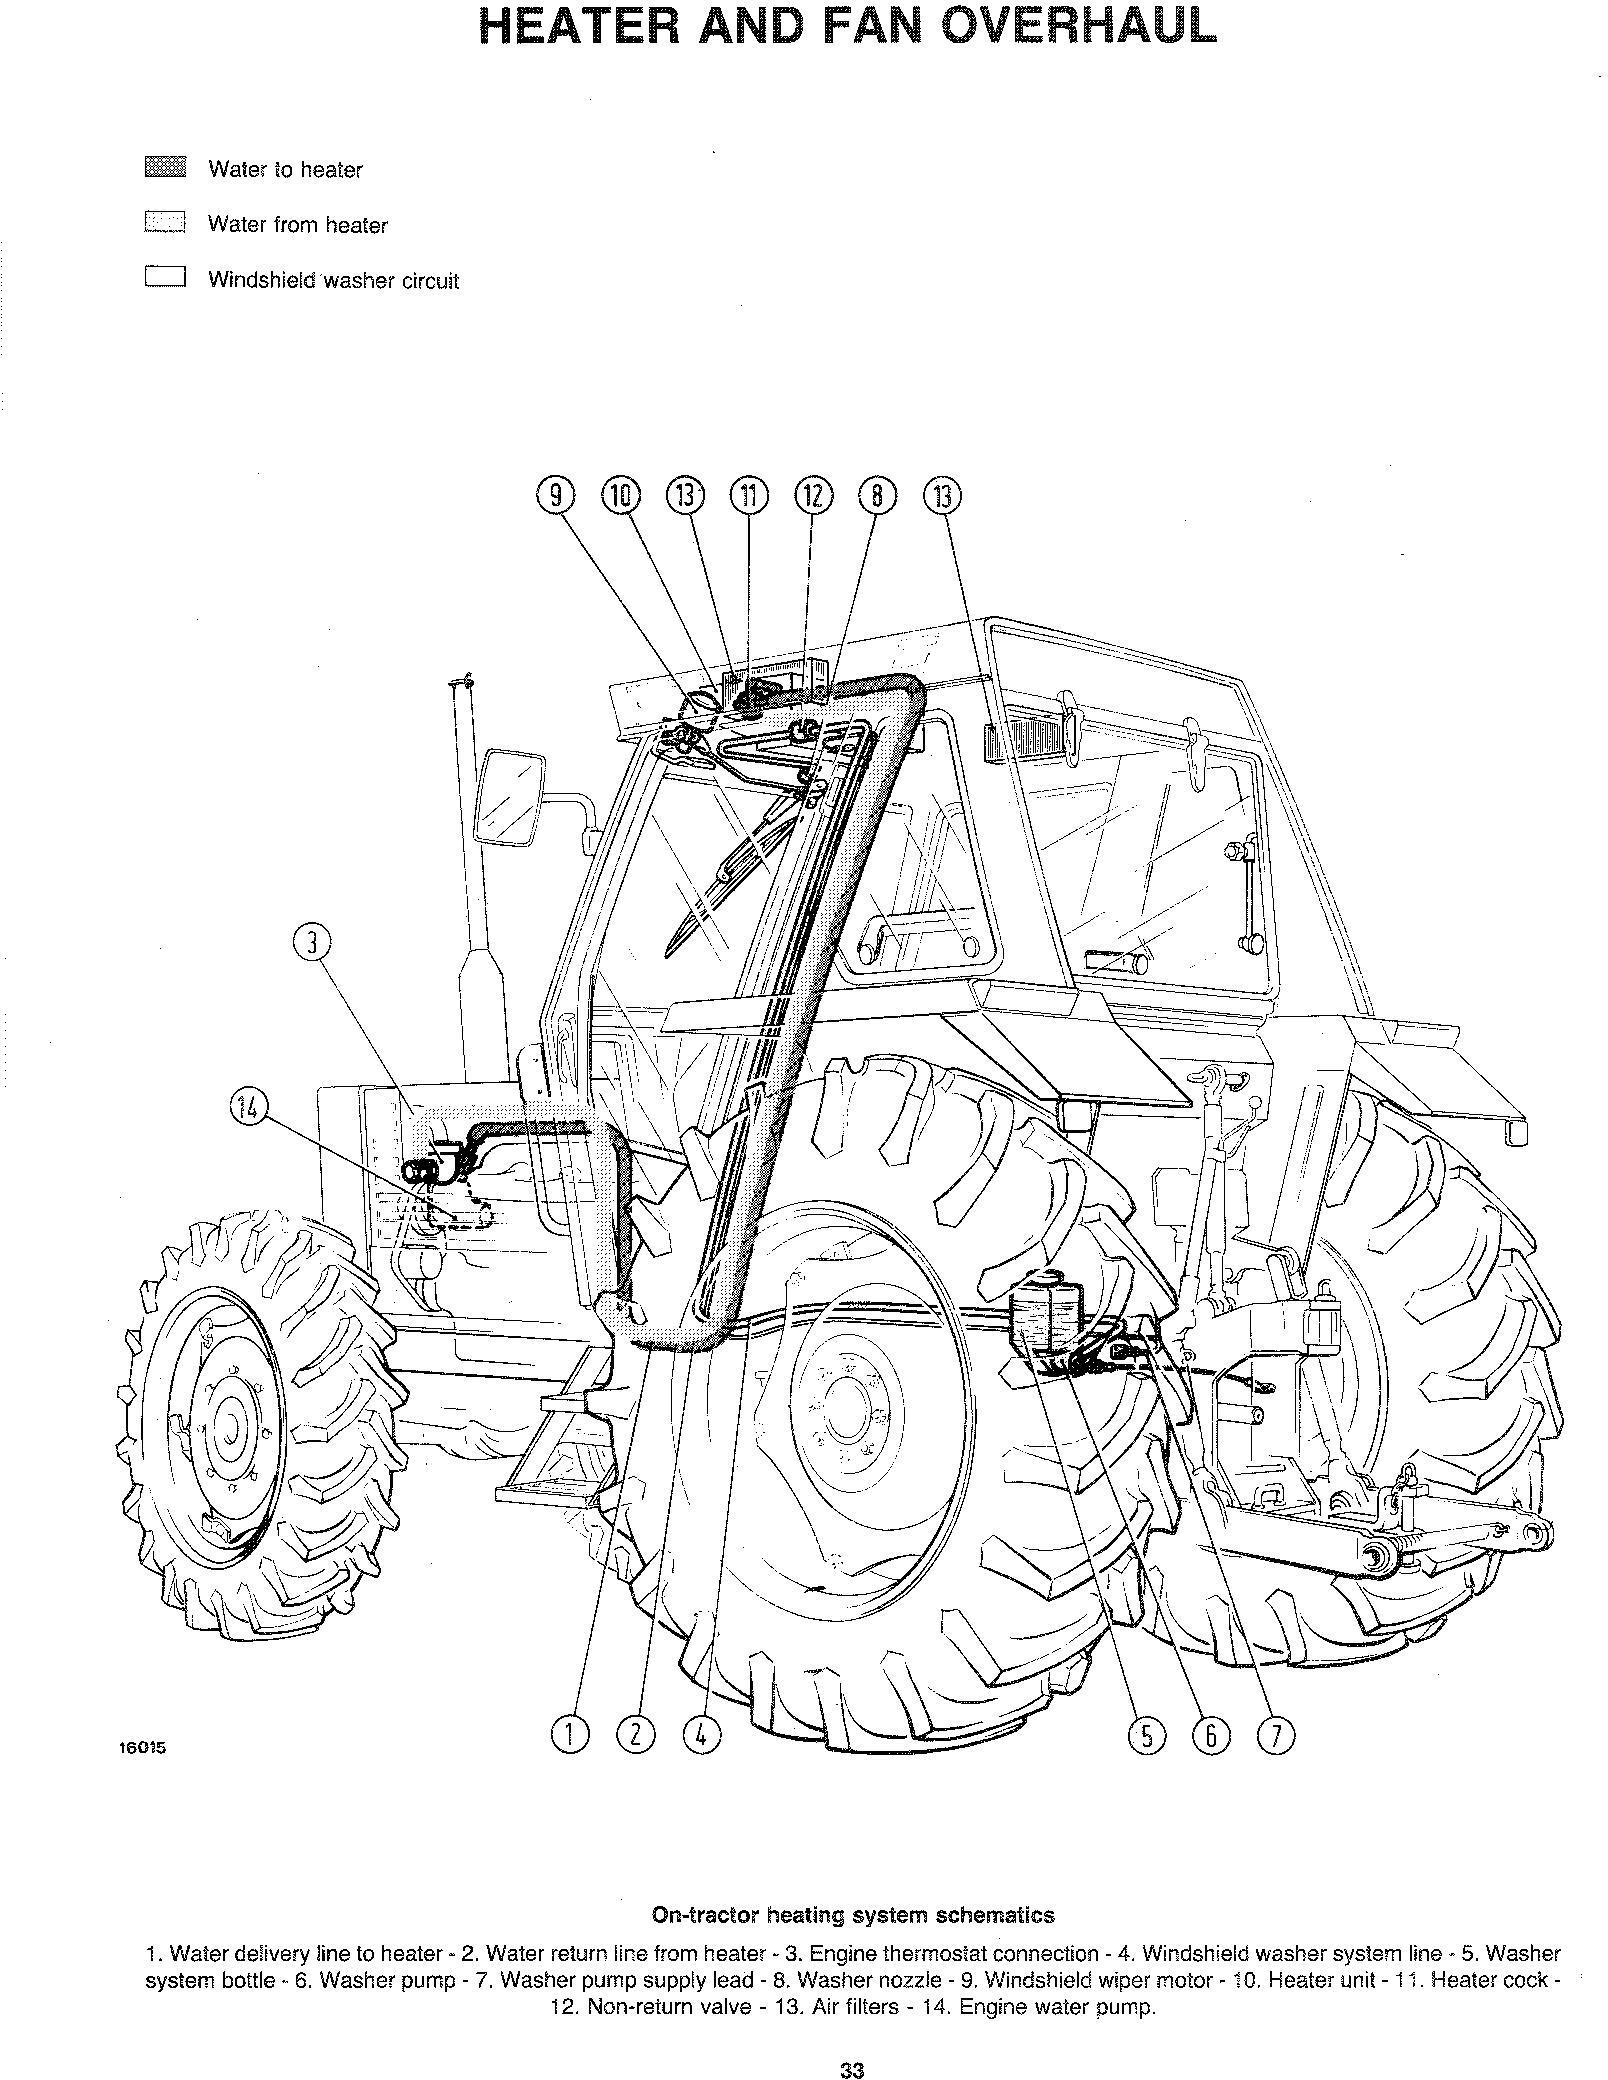 Fiat 55-90 60-90 70-90 80-90 90-90 100-90 115-90 130-90 140-90 160-90 180-90 Tractor Service Manual - 3